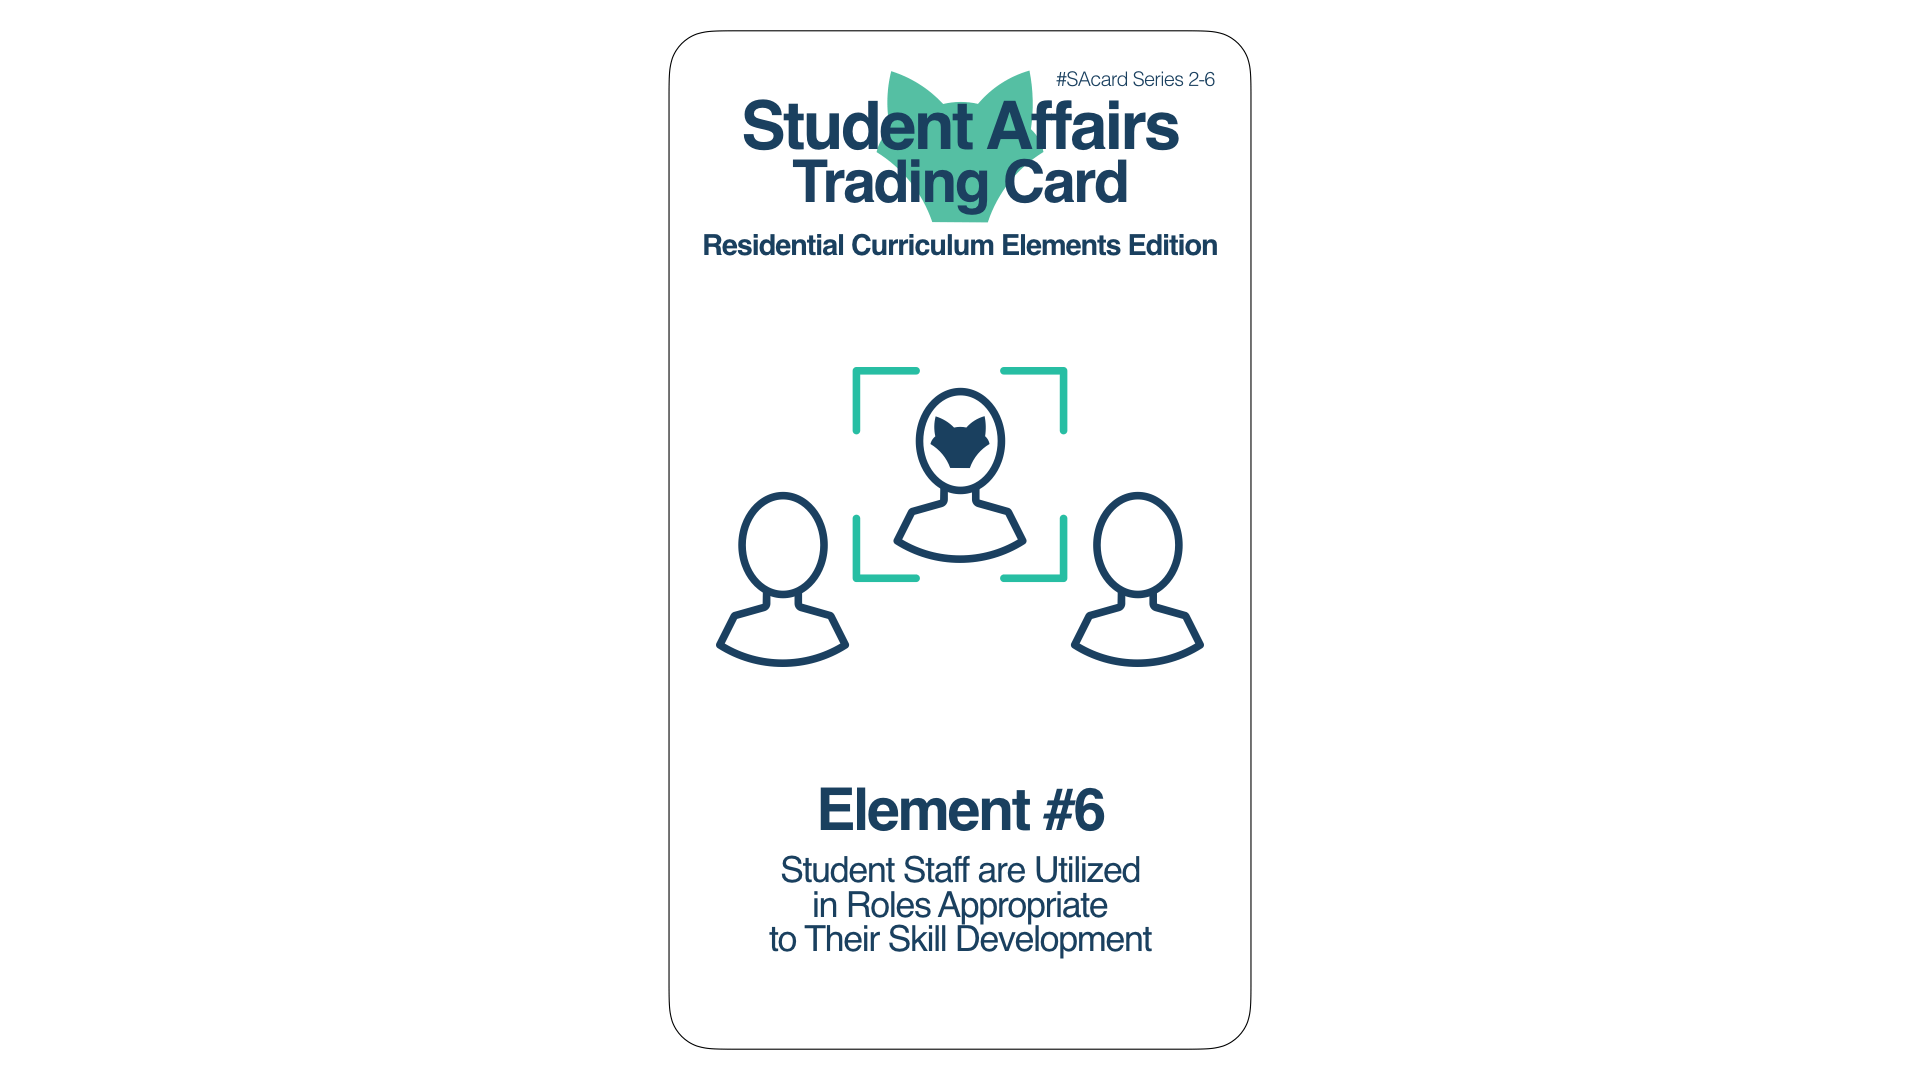 Student Affairs Trading Card 2-6: Residential Curriculum Element 6